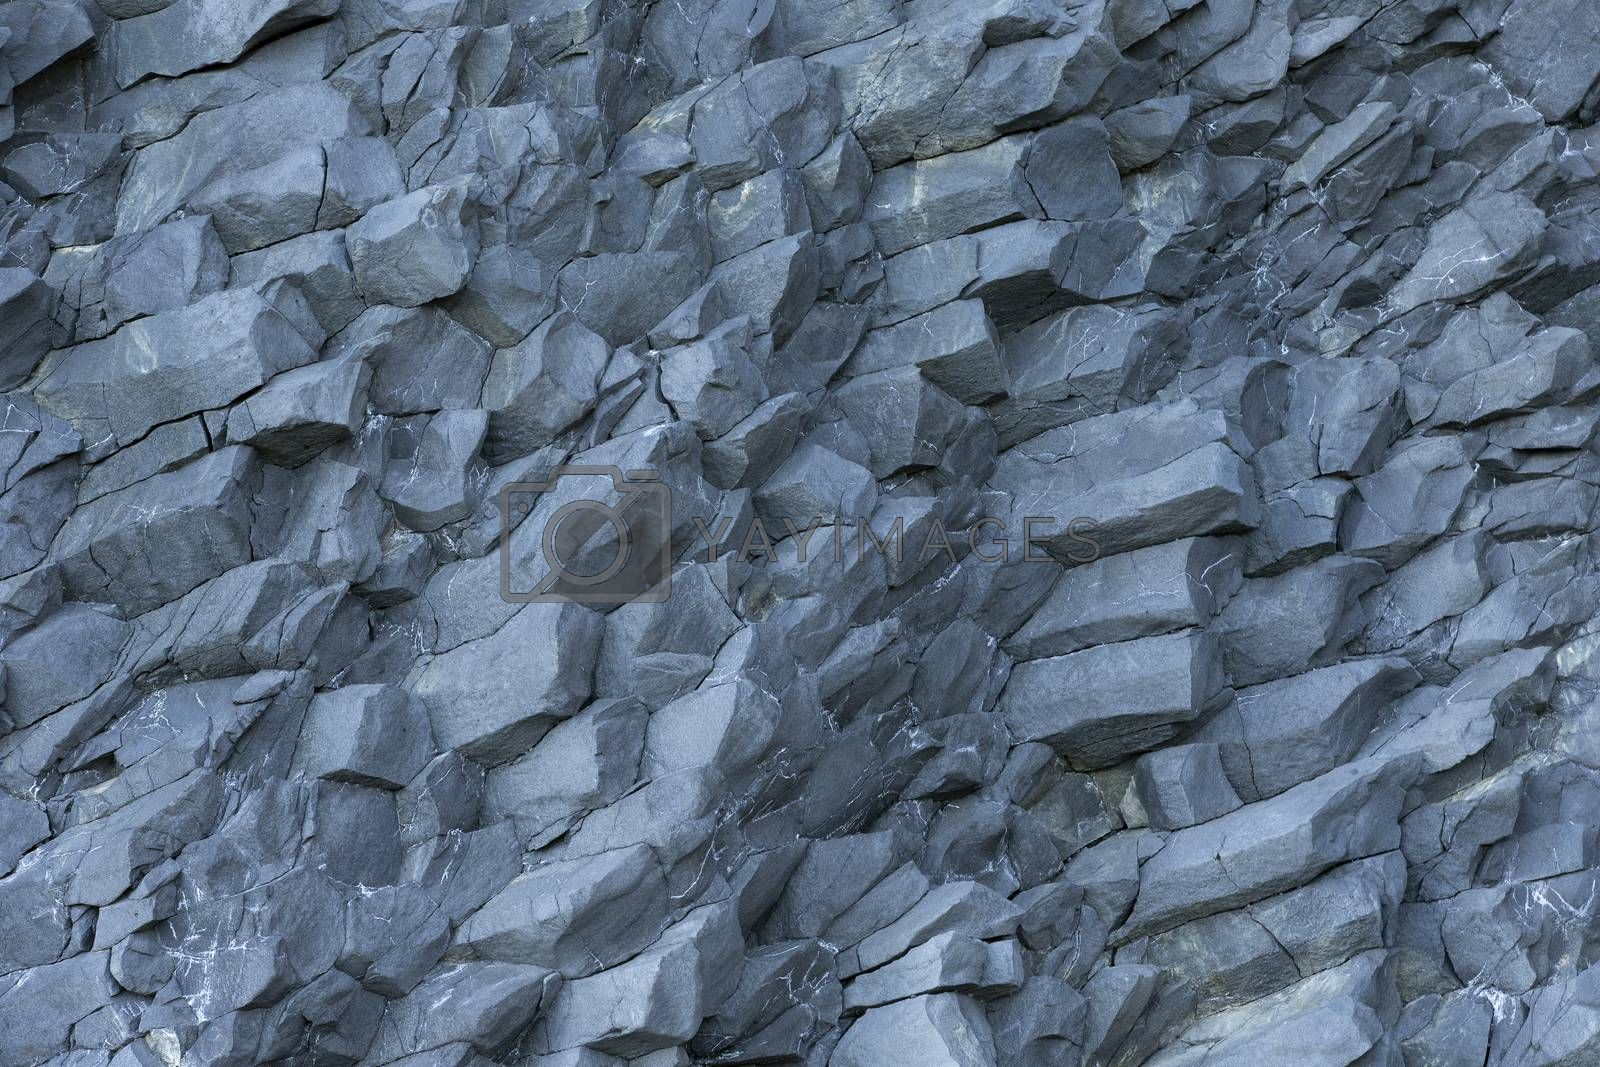 Royalty free image of basalt wall close up as background by phortcach